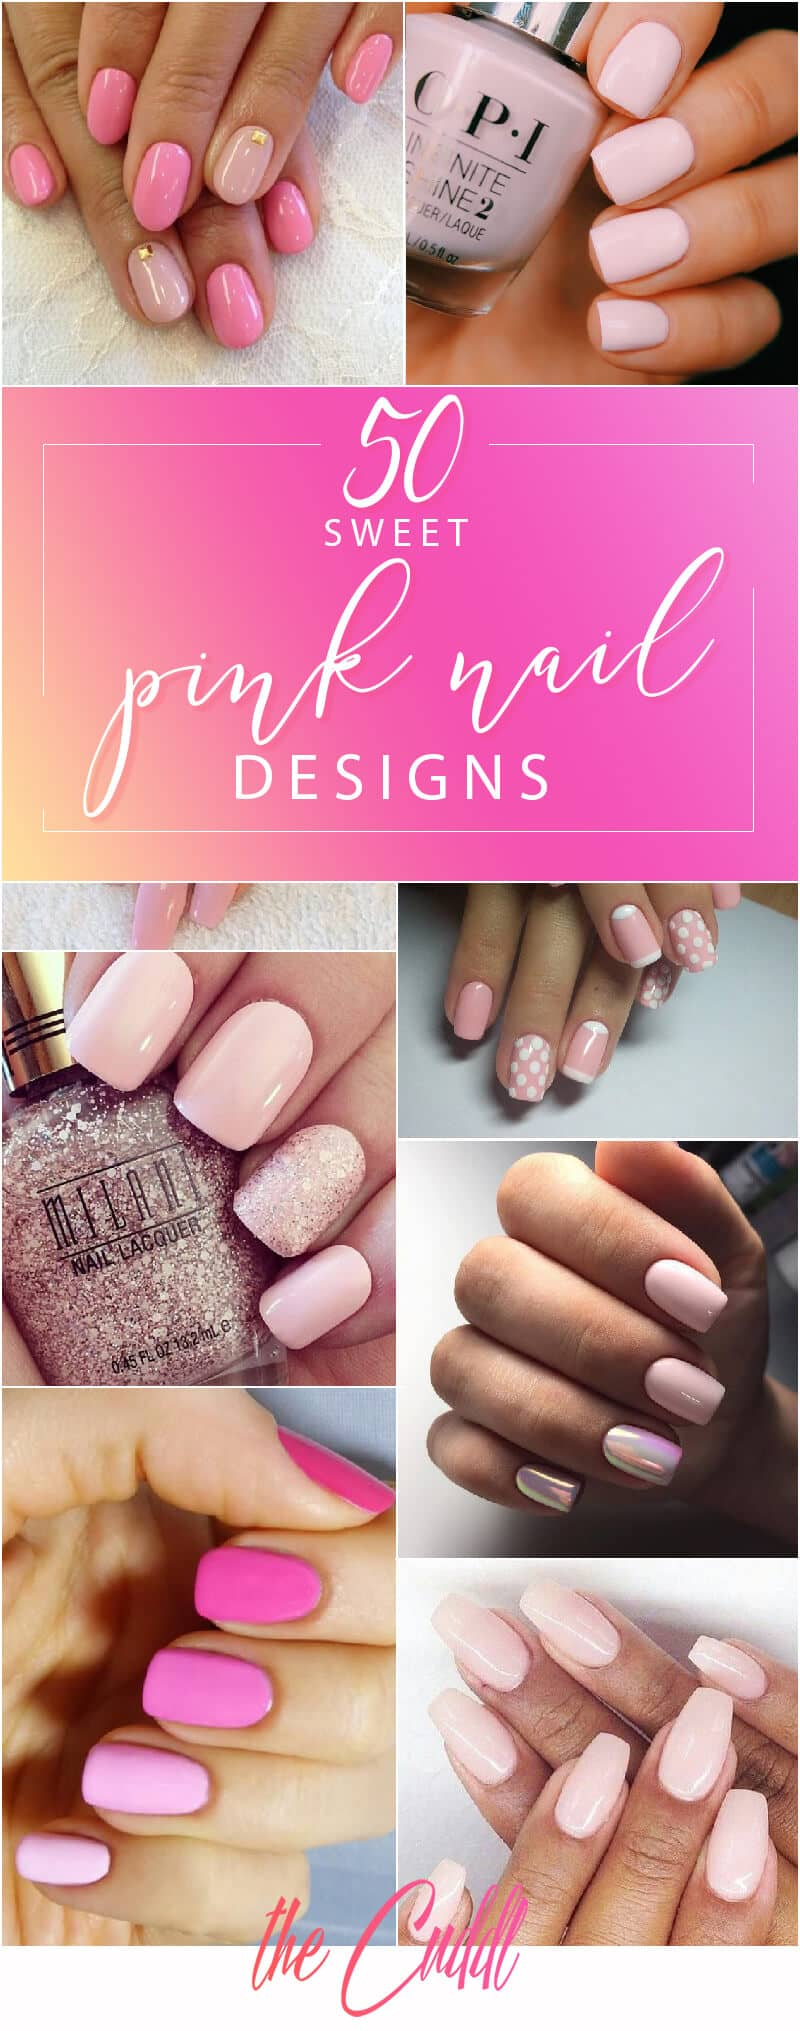 50 Sweet Pink Nail Design Ideas for a Manicure That Suits Exactly What You  Need - 50 Sweet Pink Nail Design Ideas For A Manicure That Suits Exactly